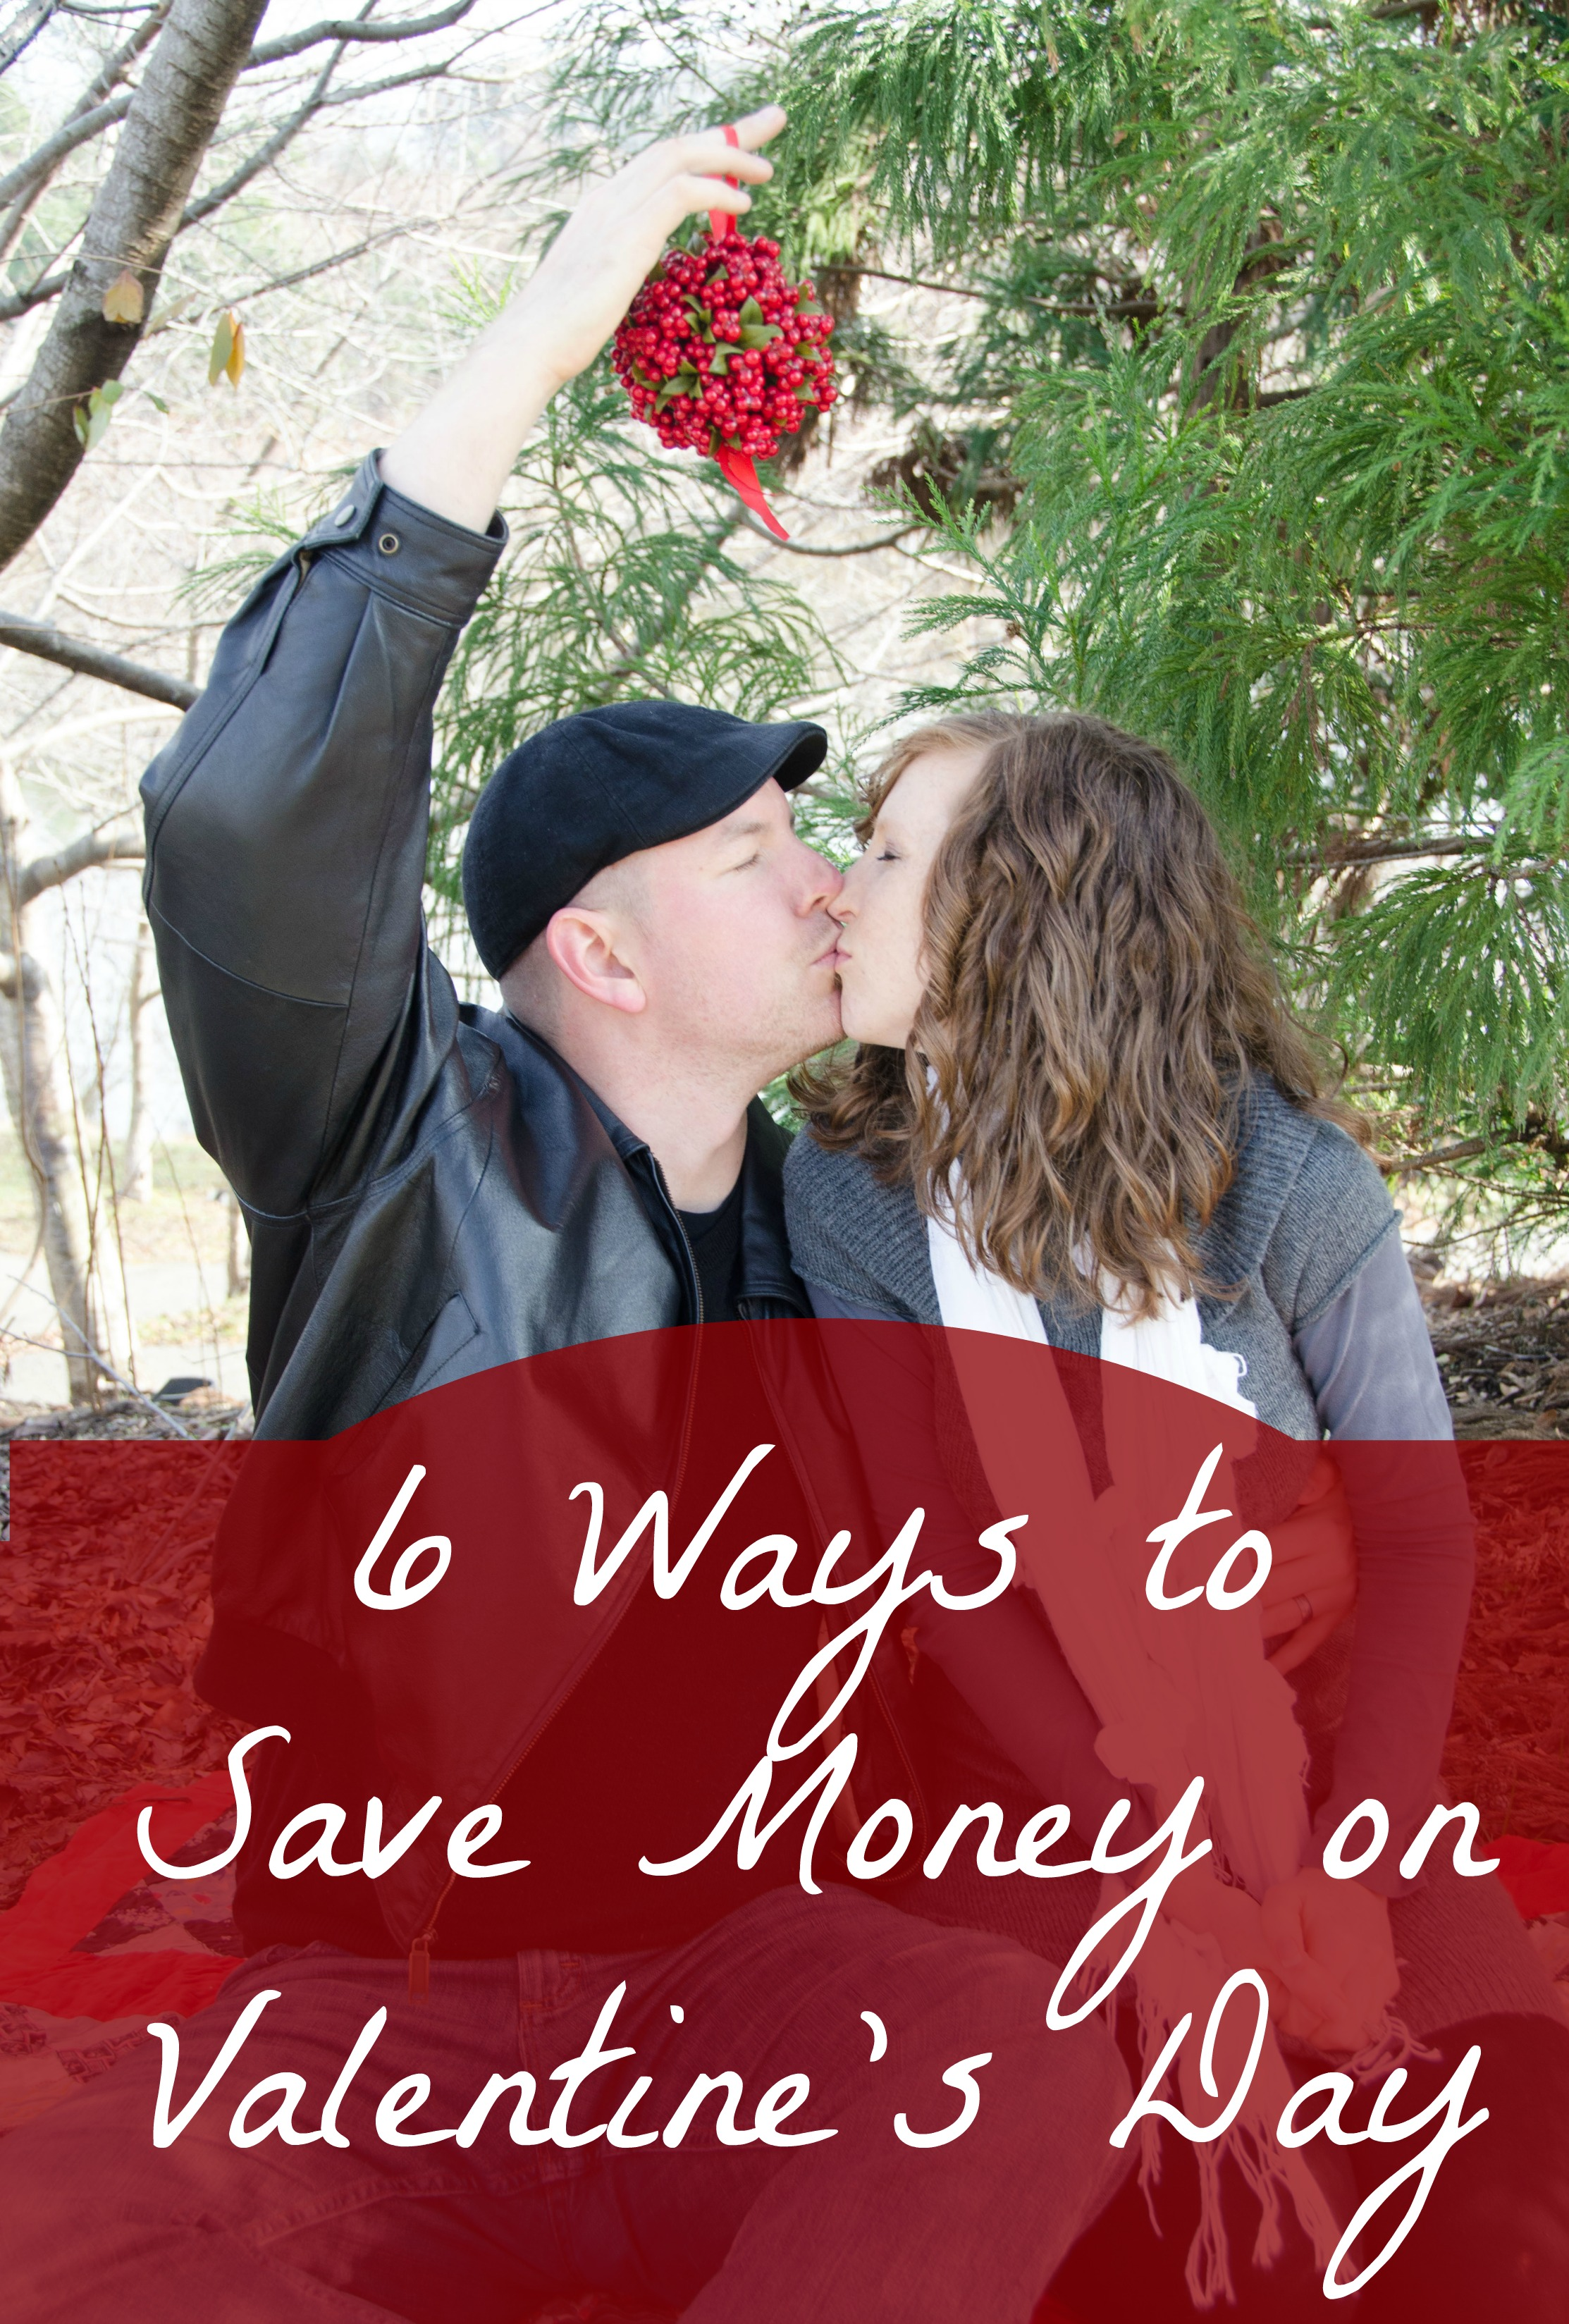 cheap dates, cheap valentine's day activities, cheap valentine's day gifts